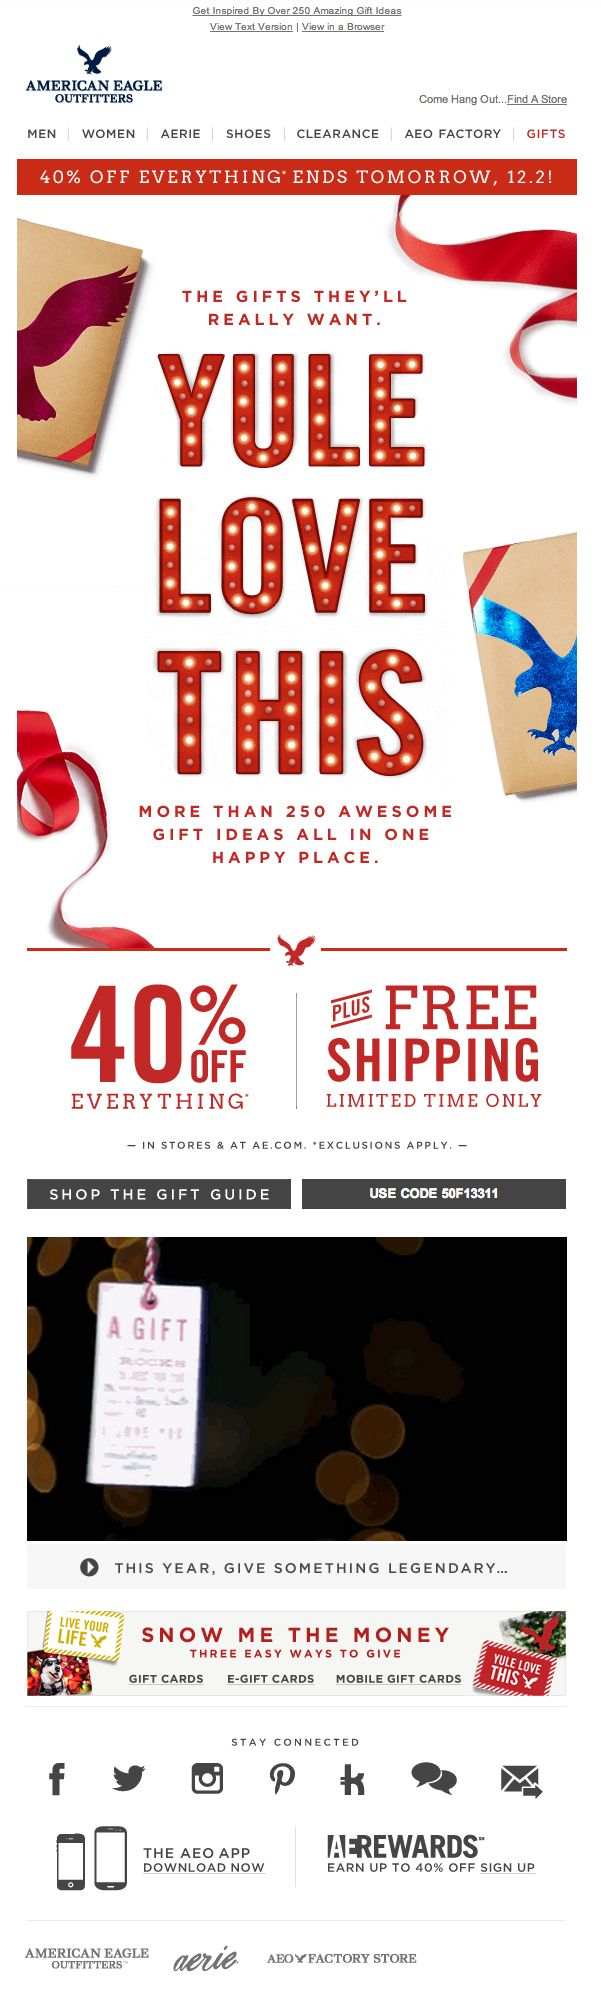 American Eagle Outfitters included an embedded video #holidayemail